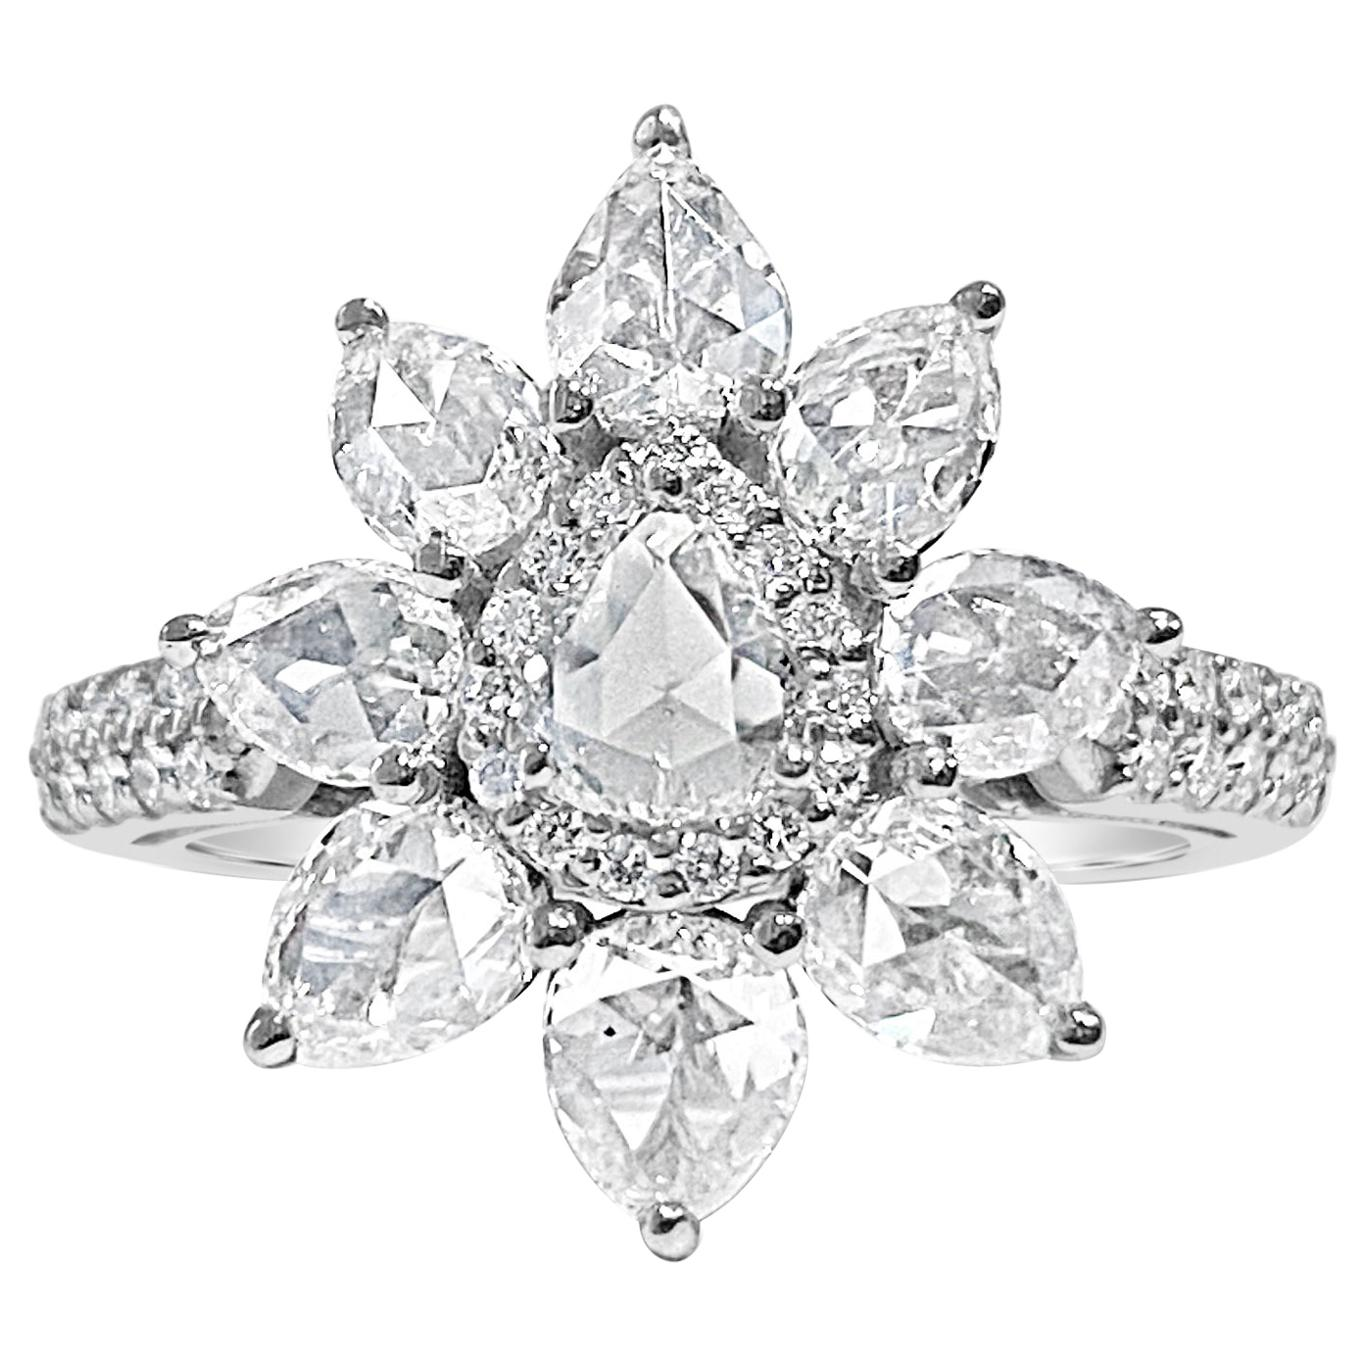 2.5 Pear Shaped Rose Cut Diamond Ring with Round Brilliant Diamonds, 18 KT by JR